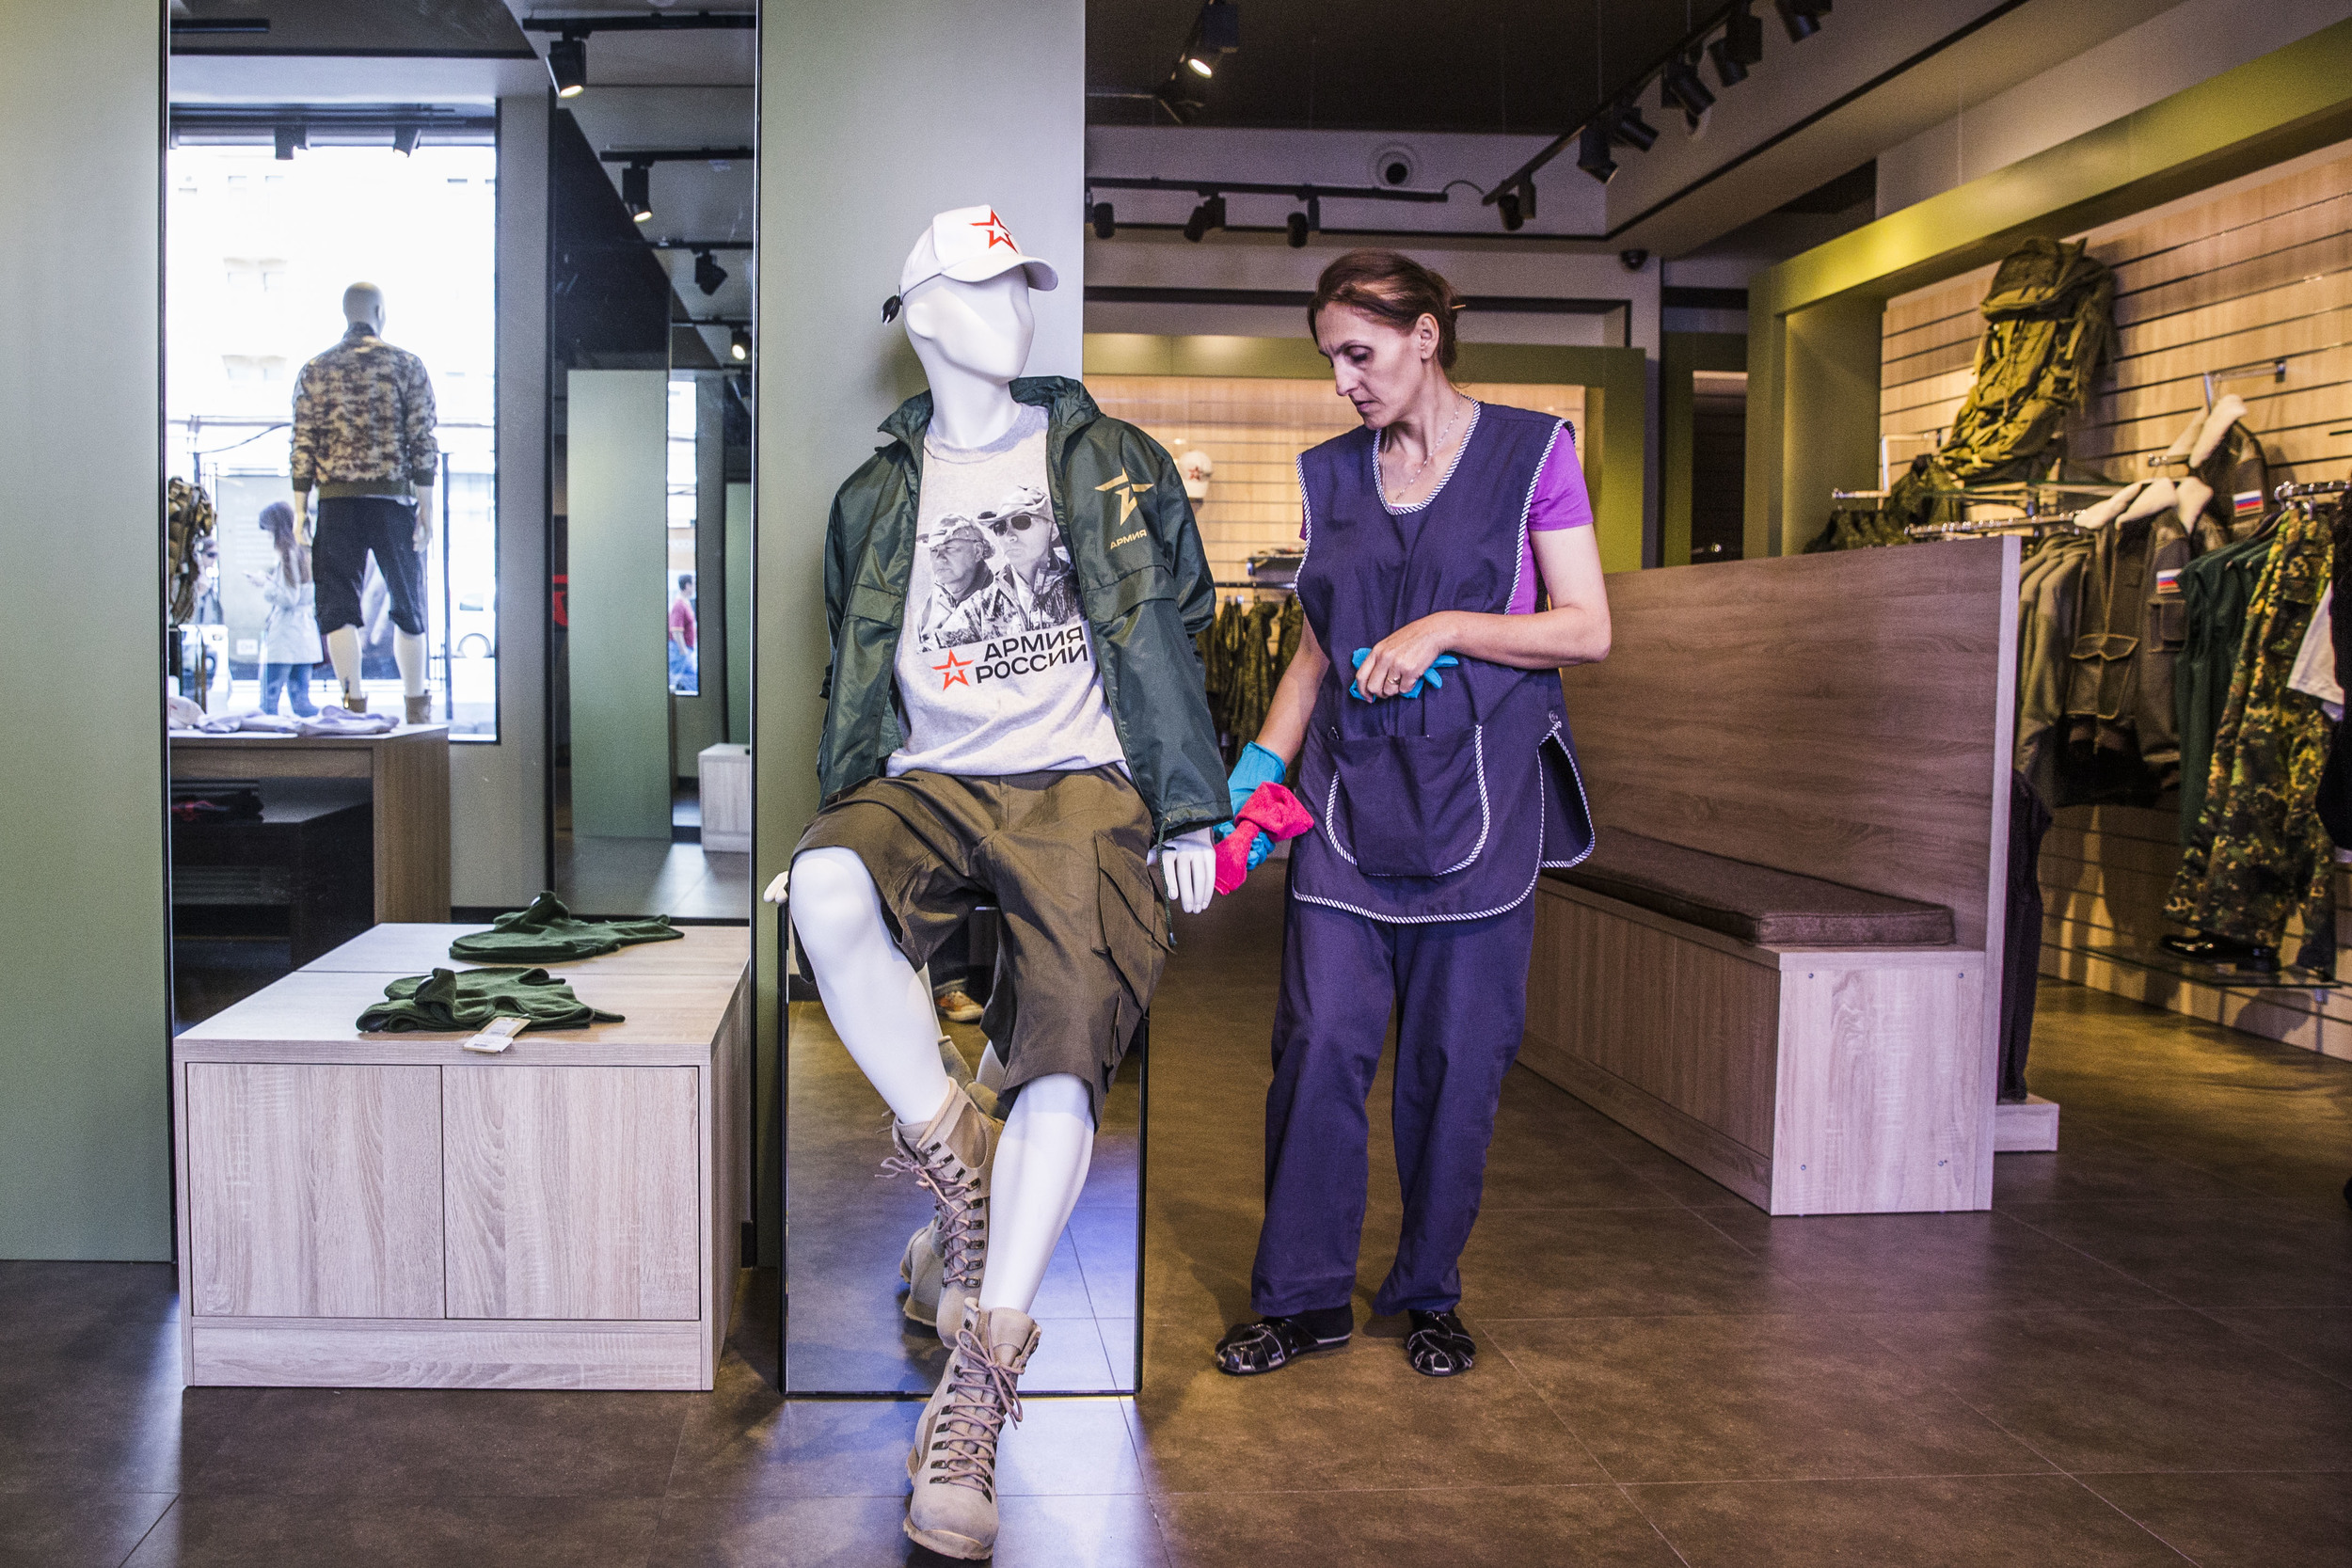 A cleaning woman wipes the mannequin dressed in a T-shirt with president Putin's face at a newly opened Russian army's merchandise shop on Moscow's central street